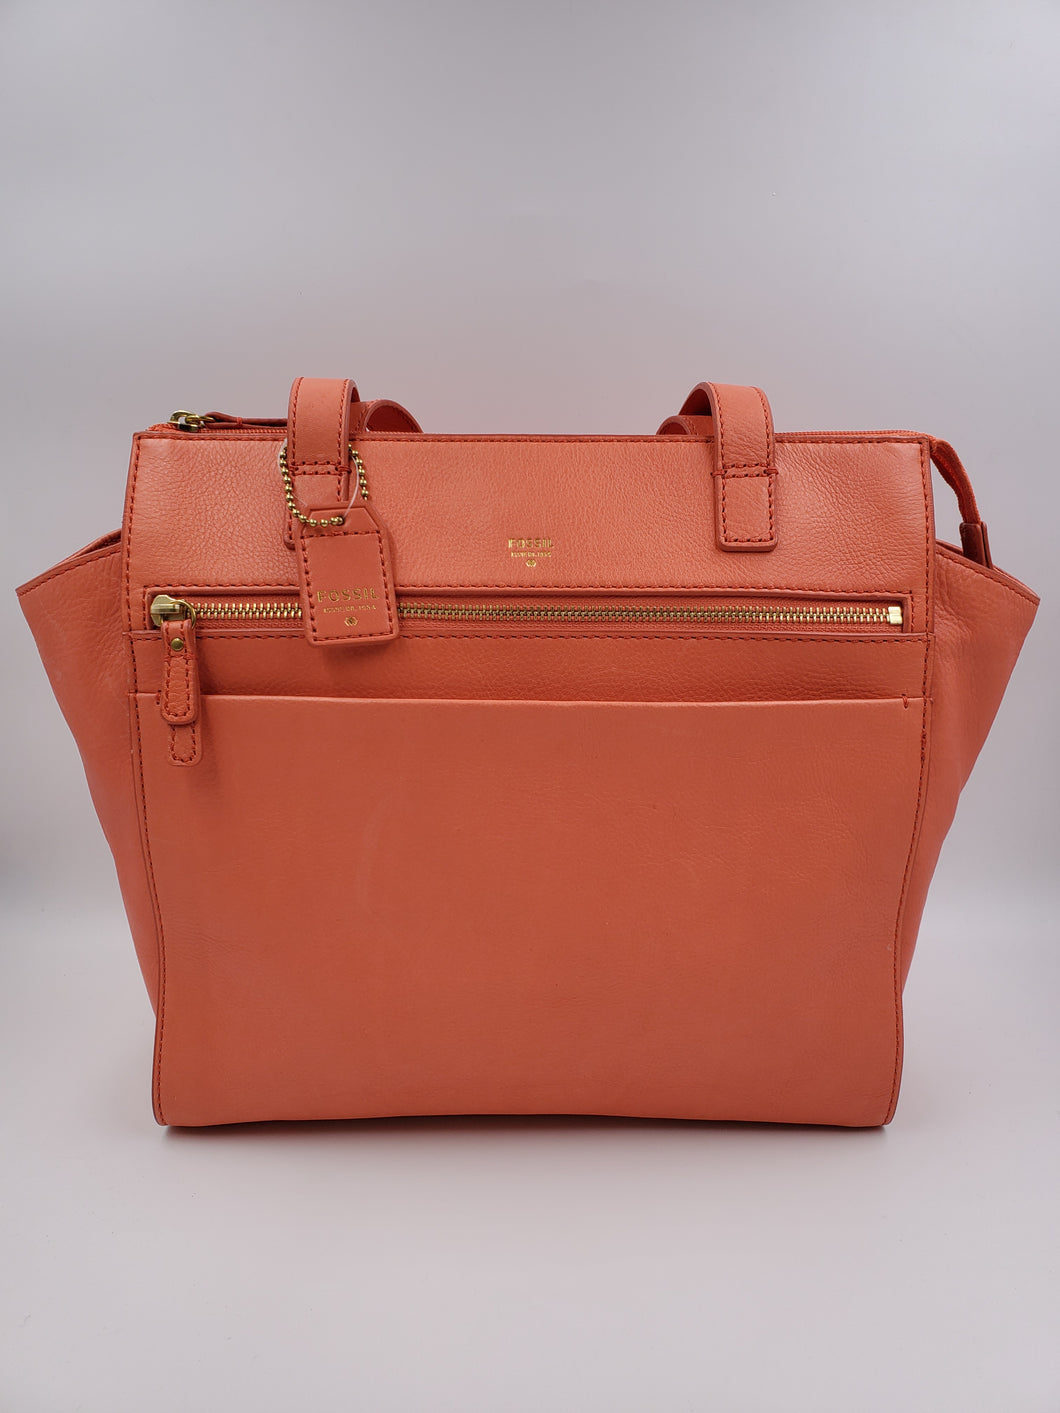 Fossil Leather Tote